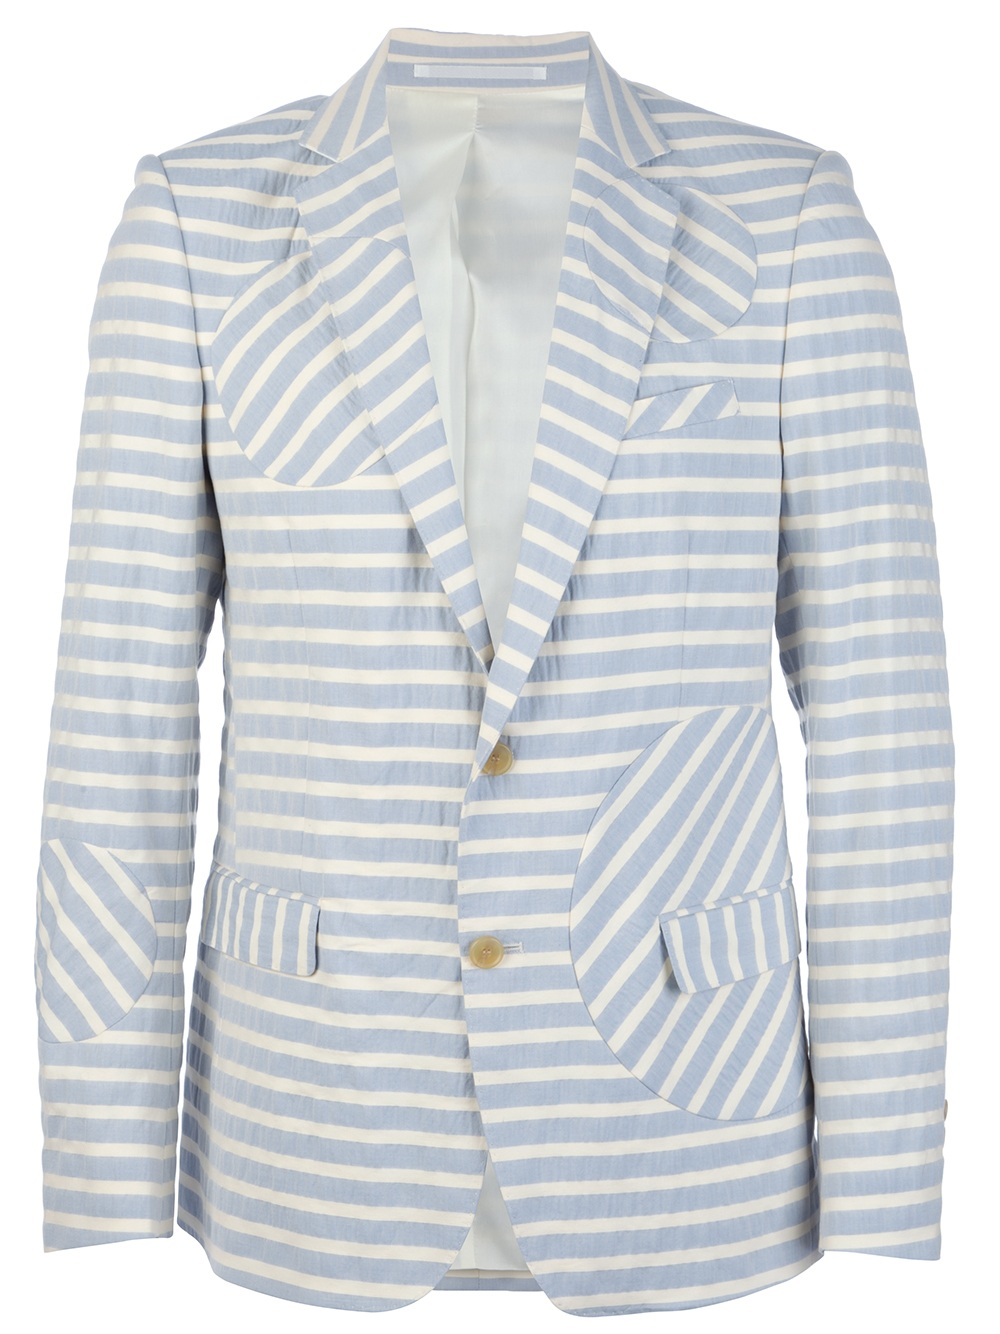 I really like this Walter van Beirendonck jacket with the matching shorts. I think they'd be great to wear together with a crisp white shirt or they'd also be nice separately. I've just got back from Marrakesh and this is what was missing from my wardrobe!